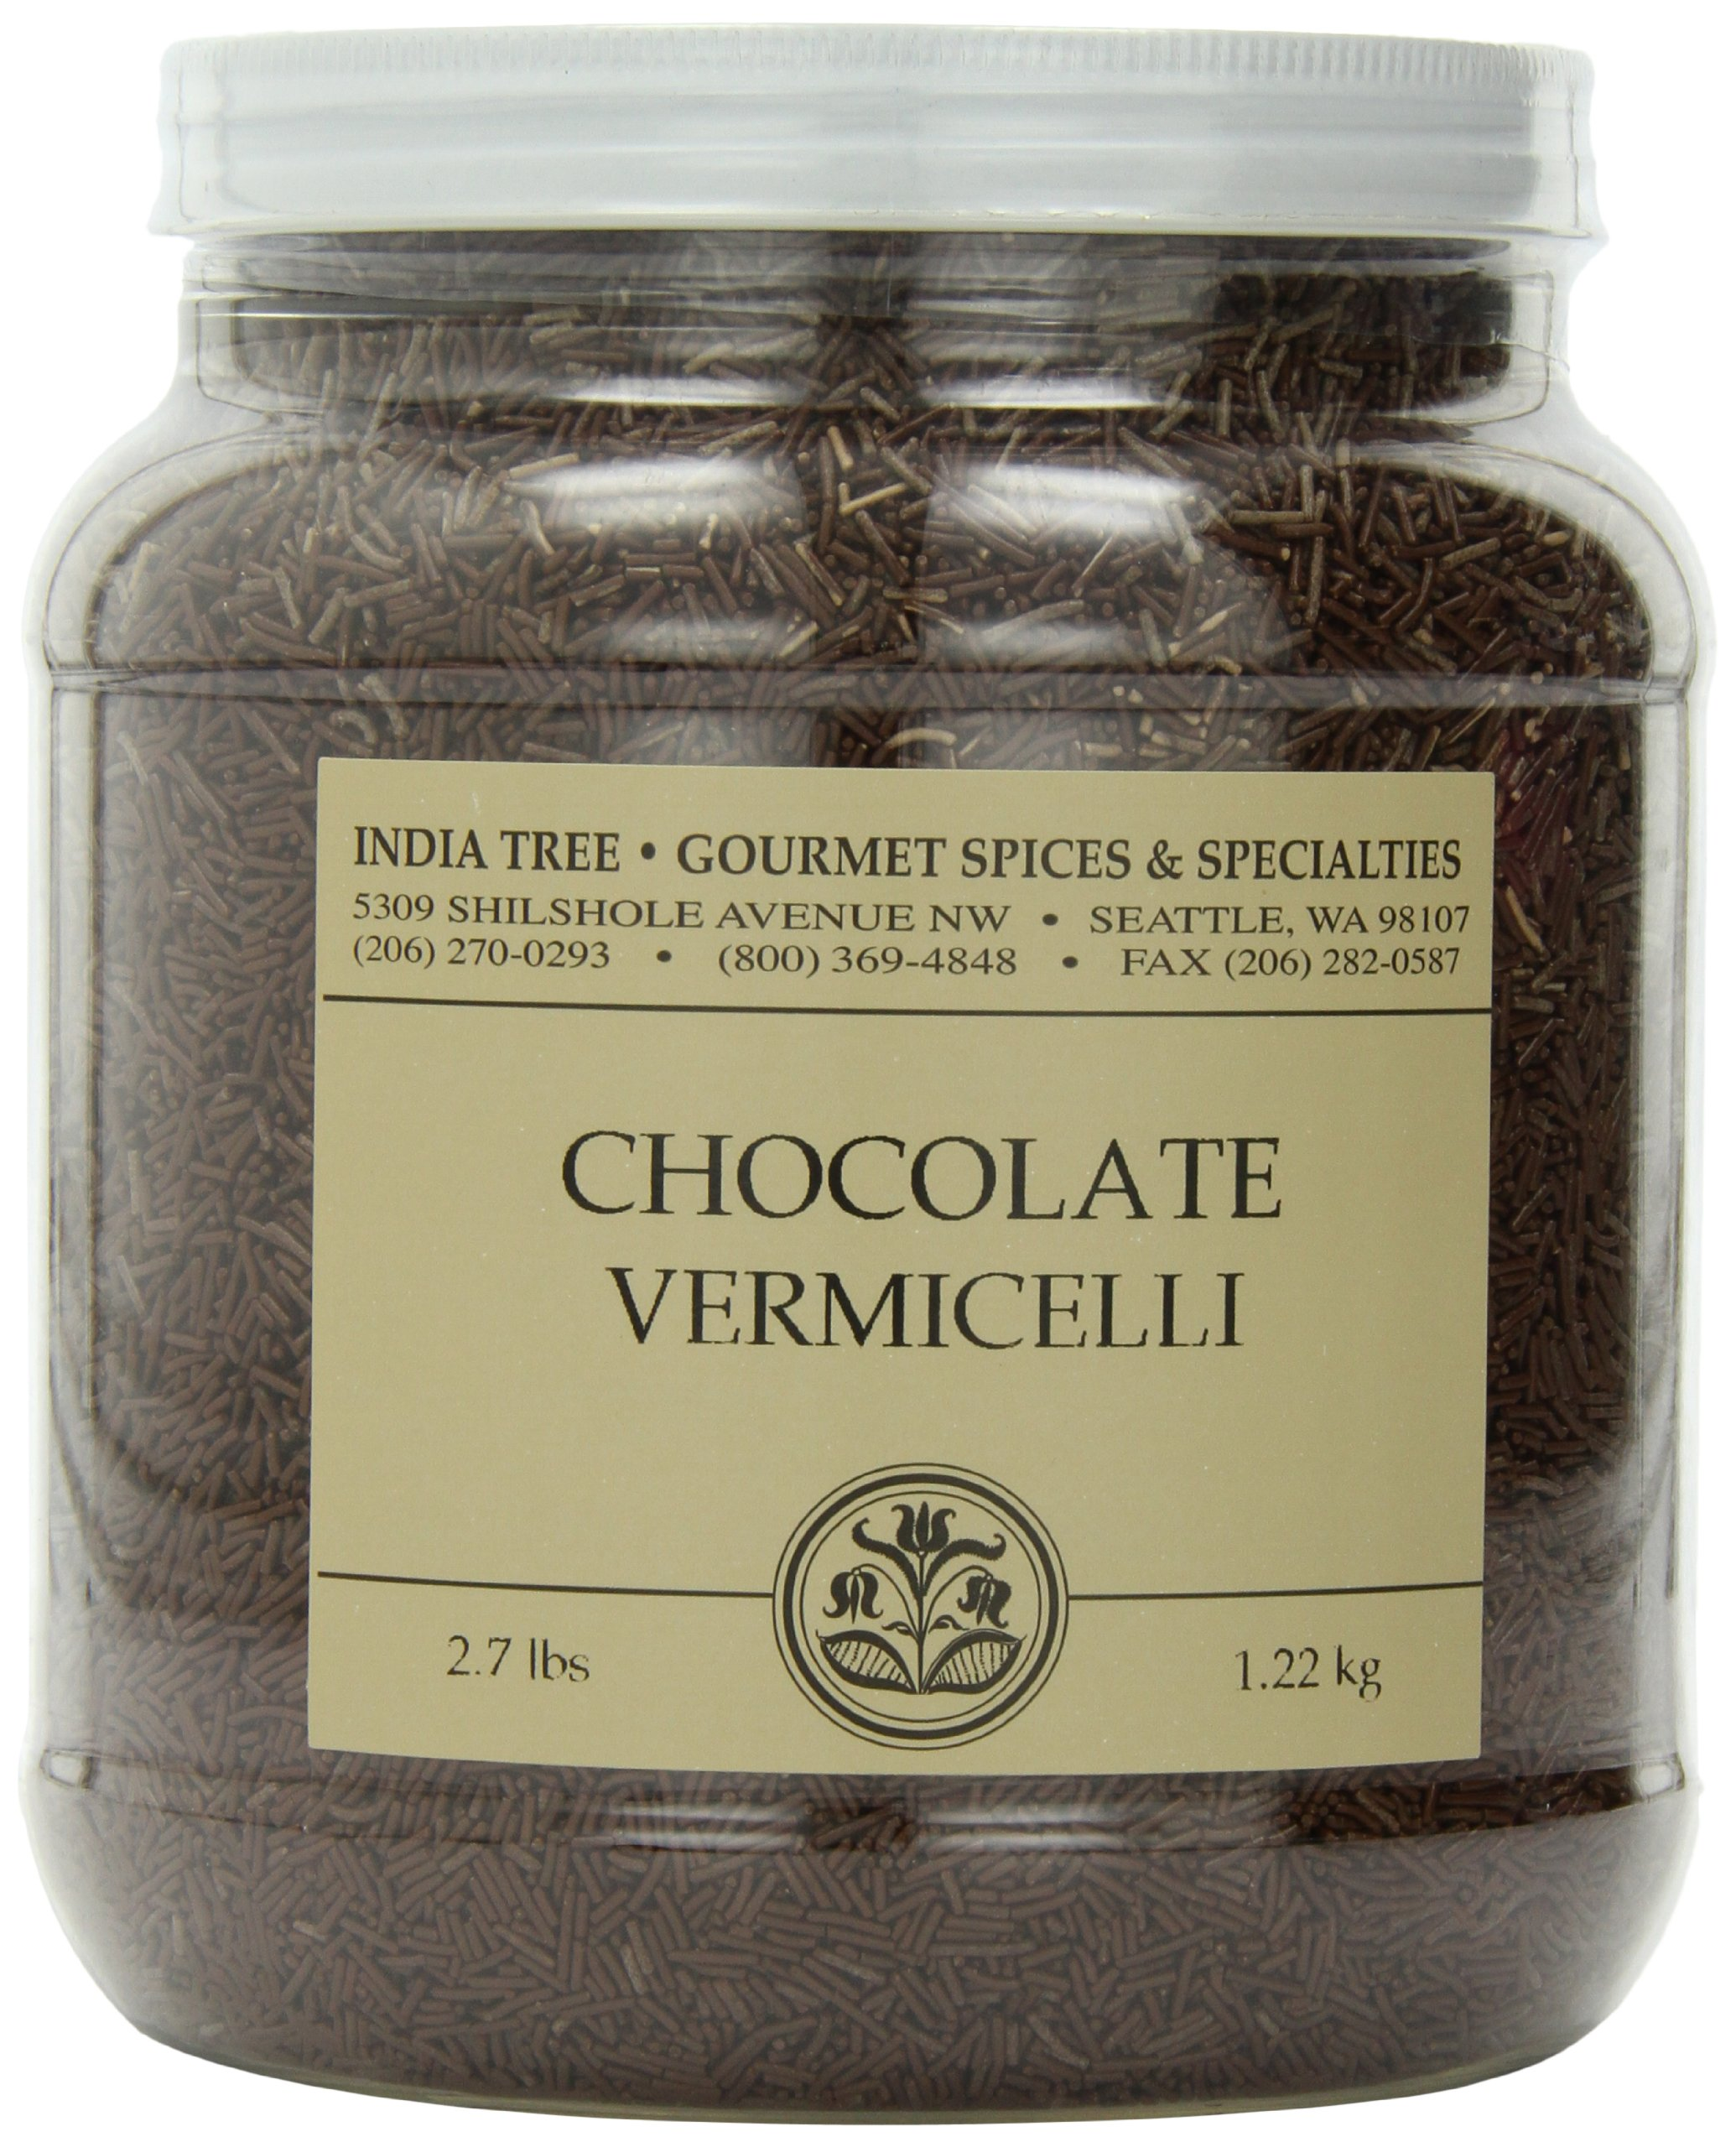 India Tree Chocolate Vermicelli, 2.7 lb by India Tree